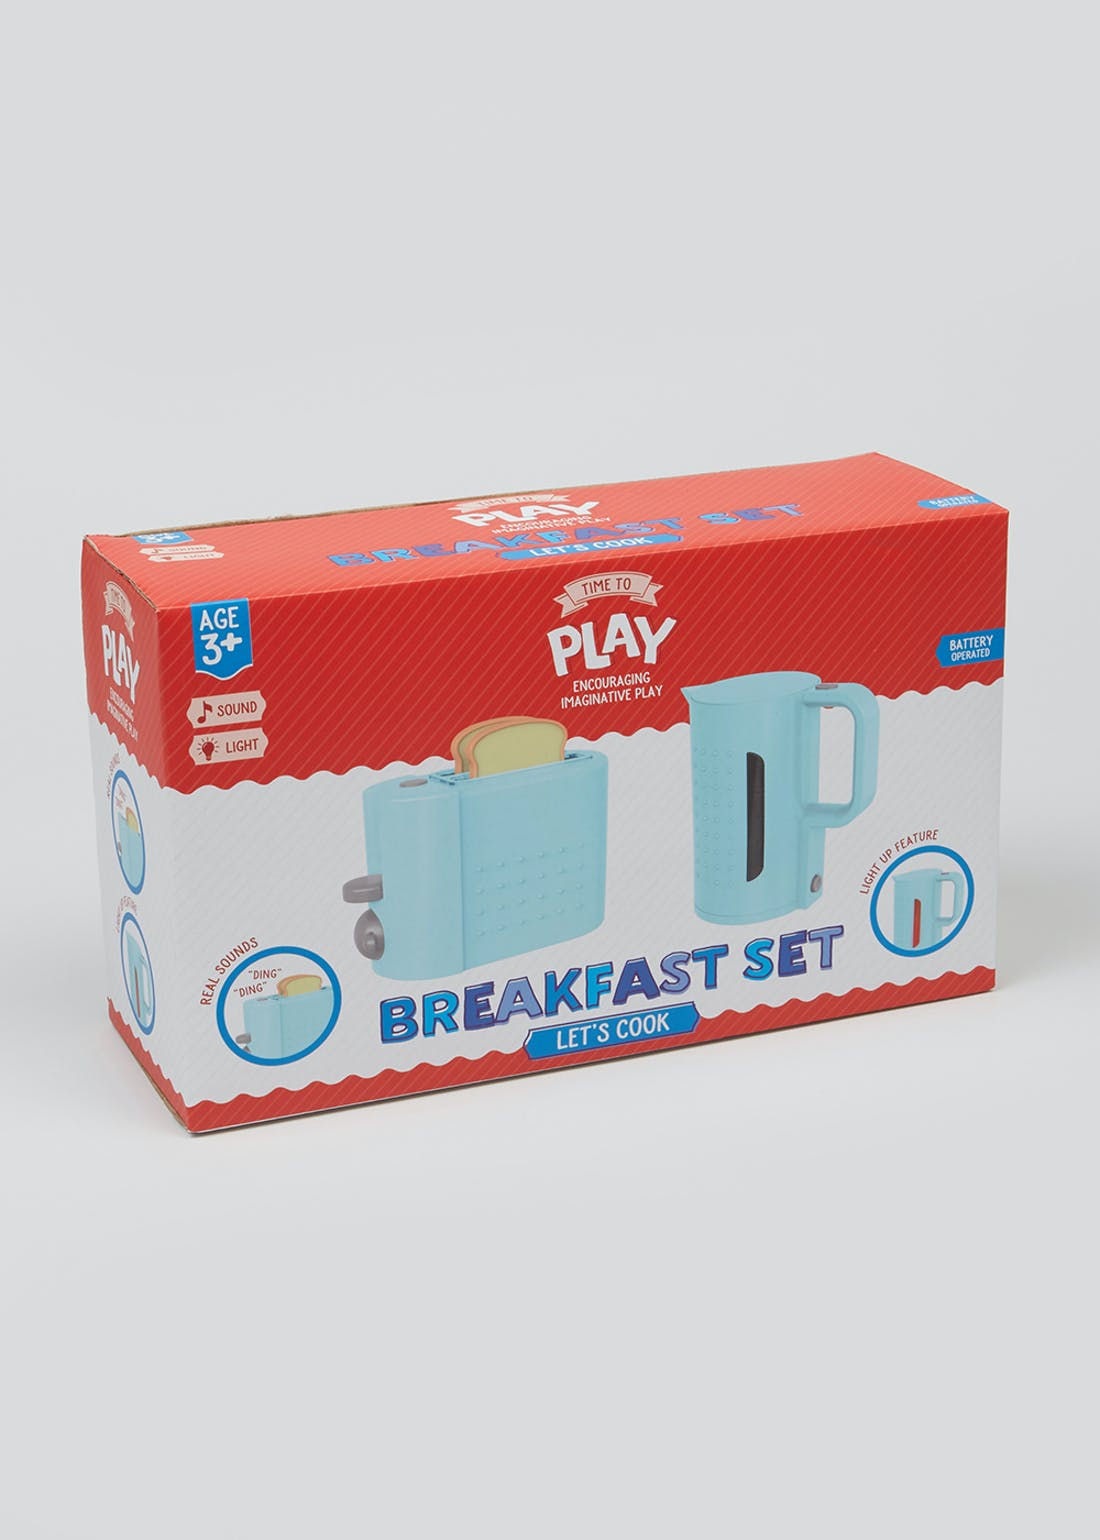 Kids Breakfast Play Set (30cm x 18cm x 10.5cm)